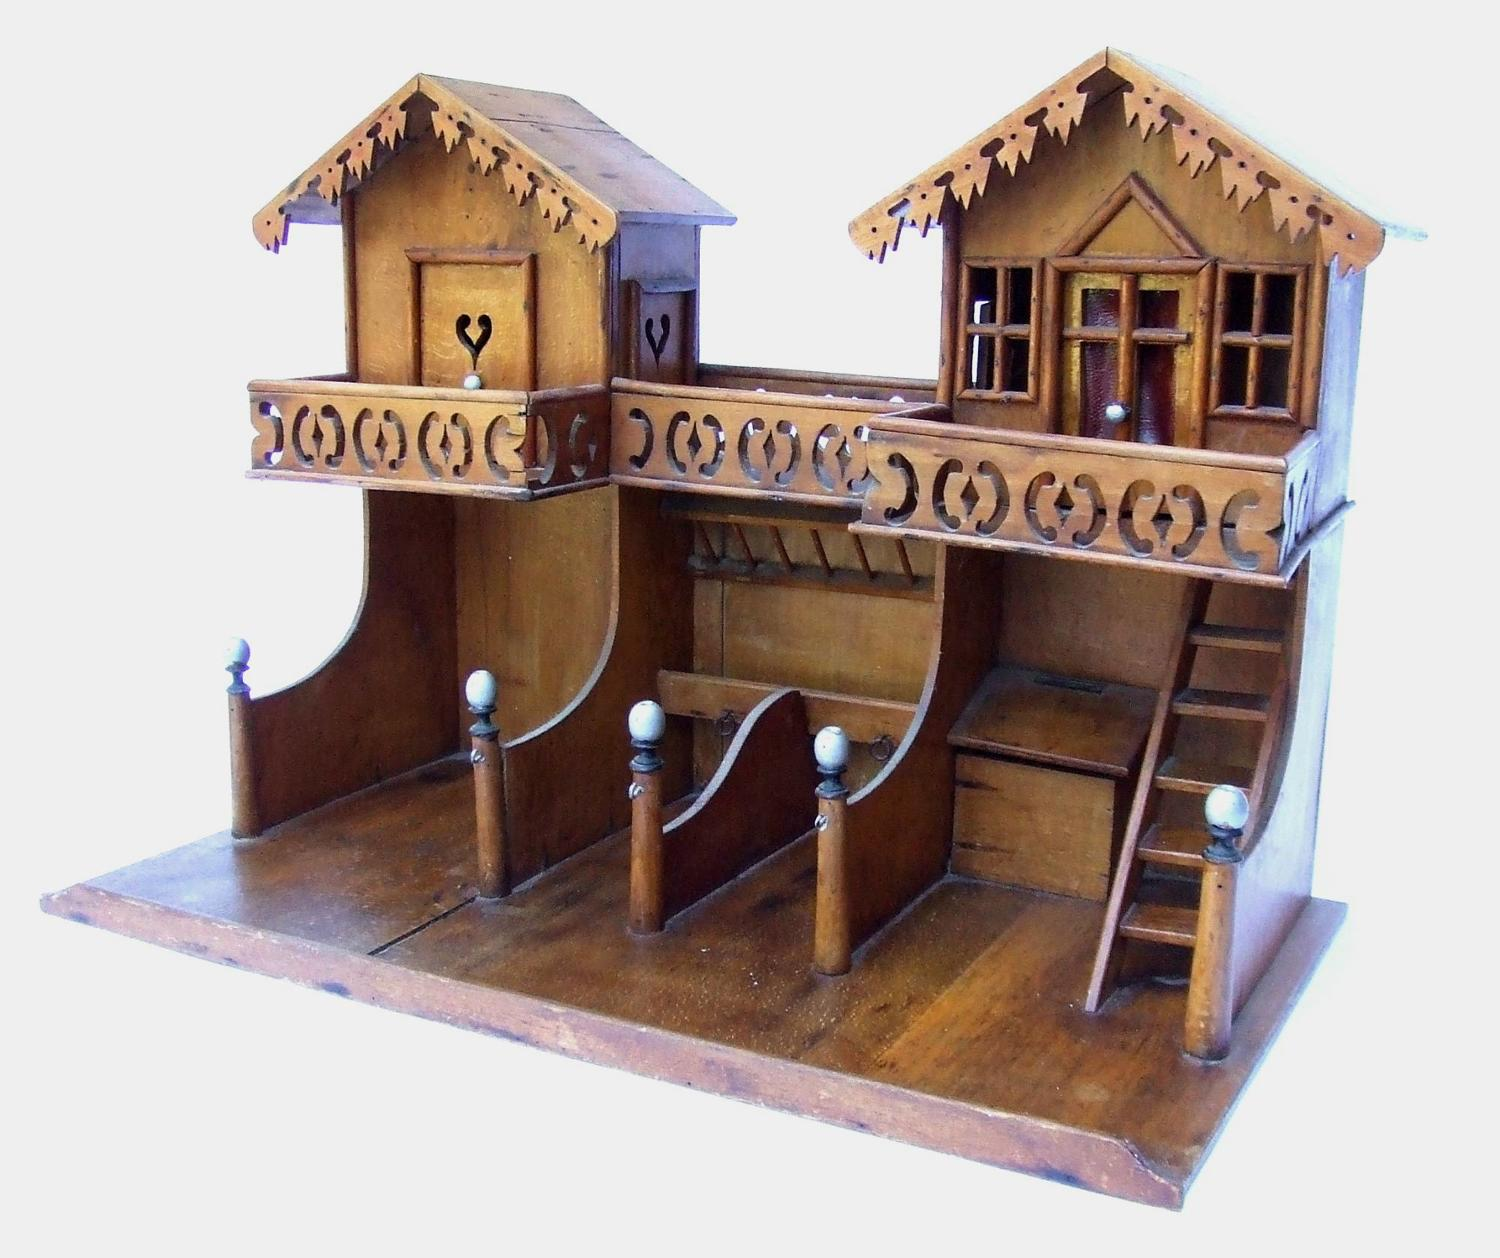 An Antique Swiss/German Wooden Model of a Stable